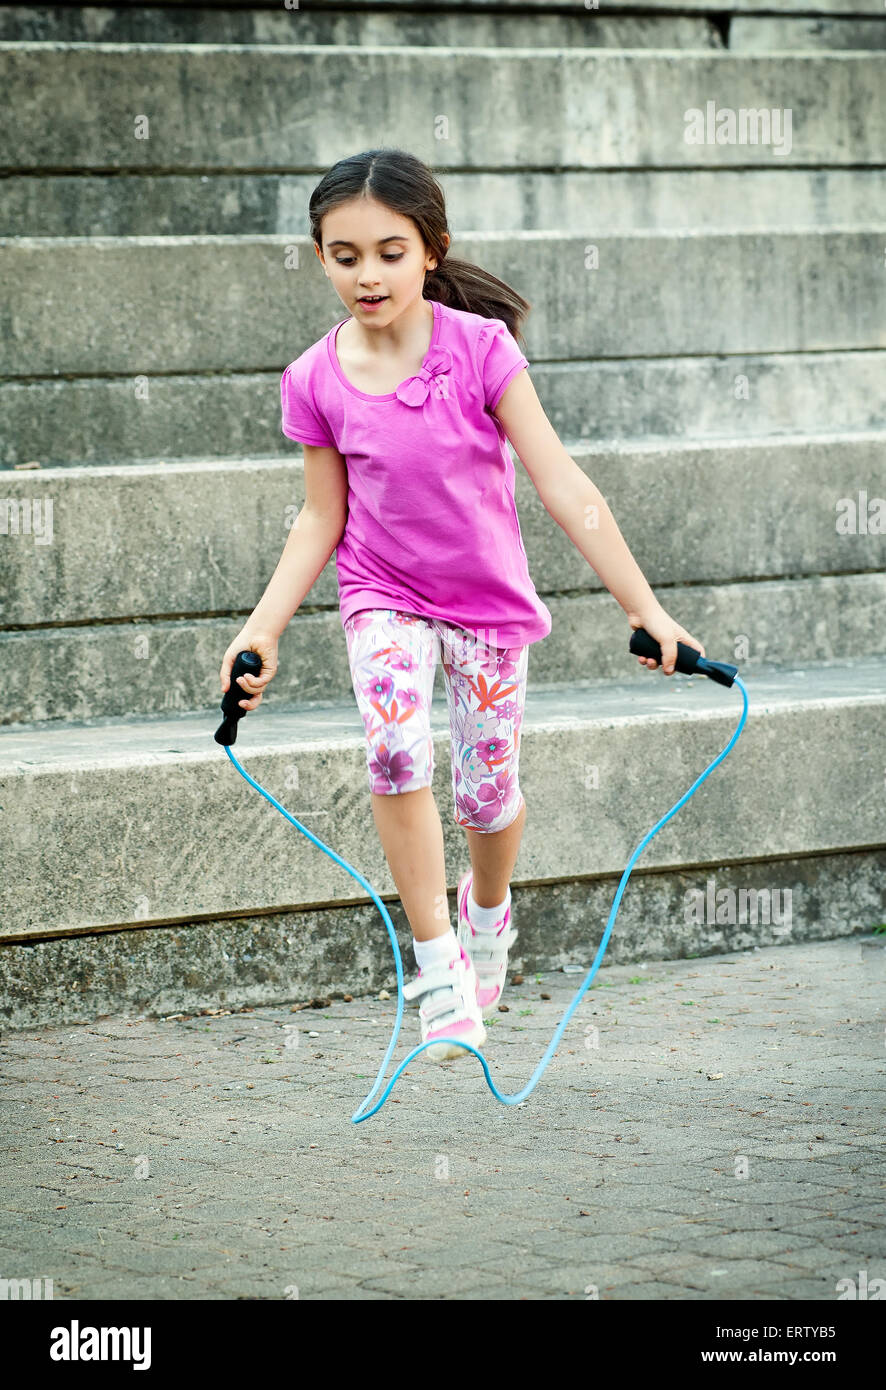 Happy attractive little girl in a trendy pink outfit skipping outdoors - Stock Image